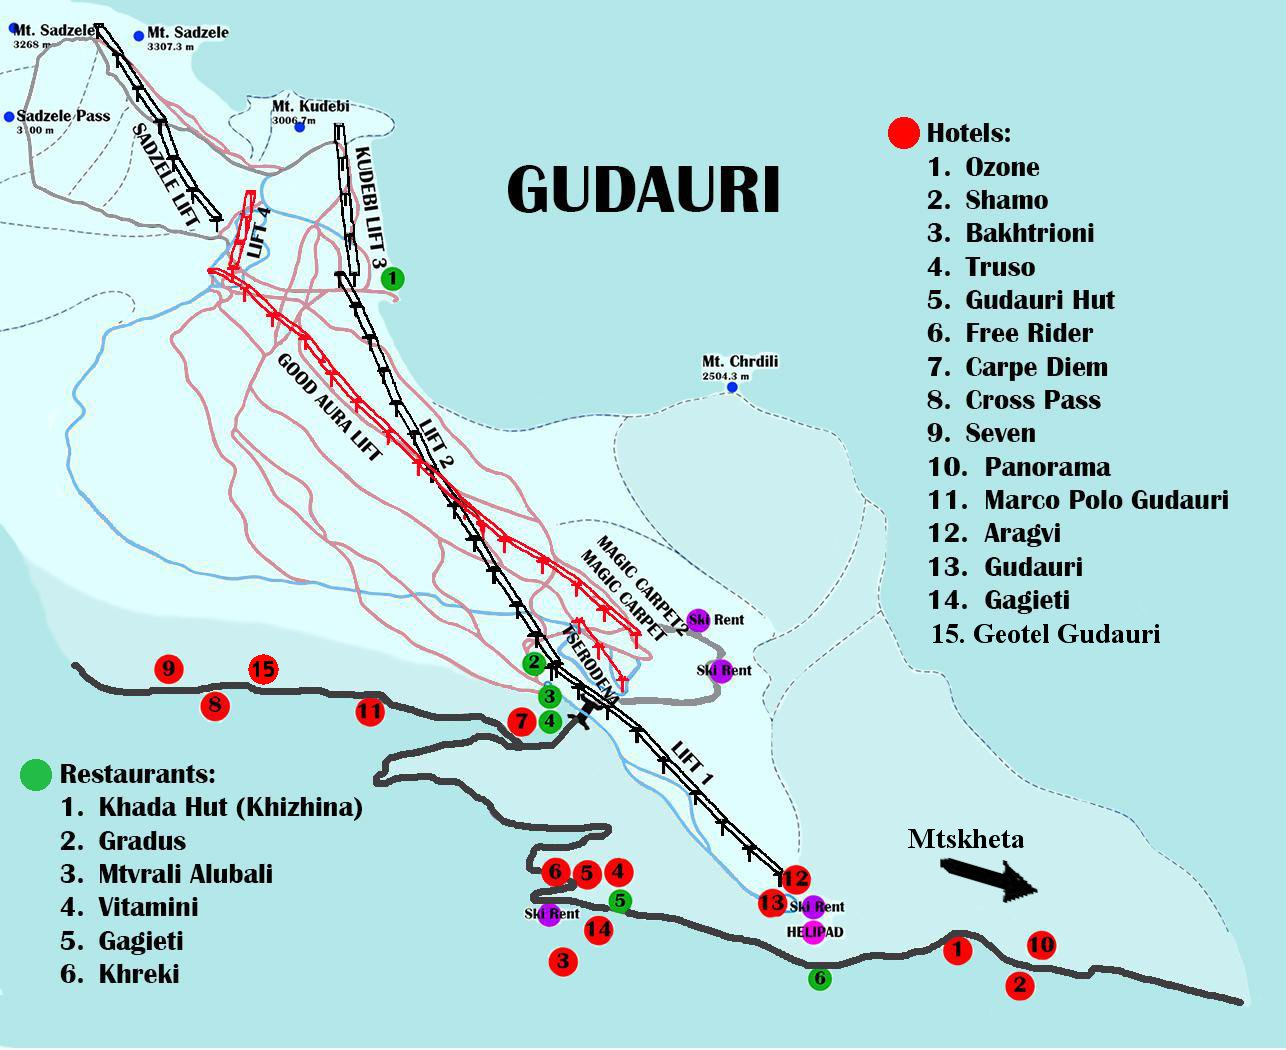 Map Of Georgia Hotels.Hotels In Gudauri Georgia Vacation Packages 2019 Geofit Travel